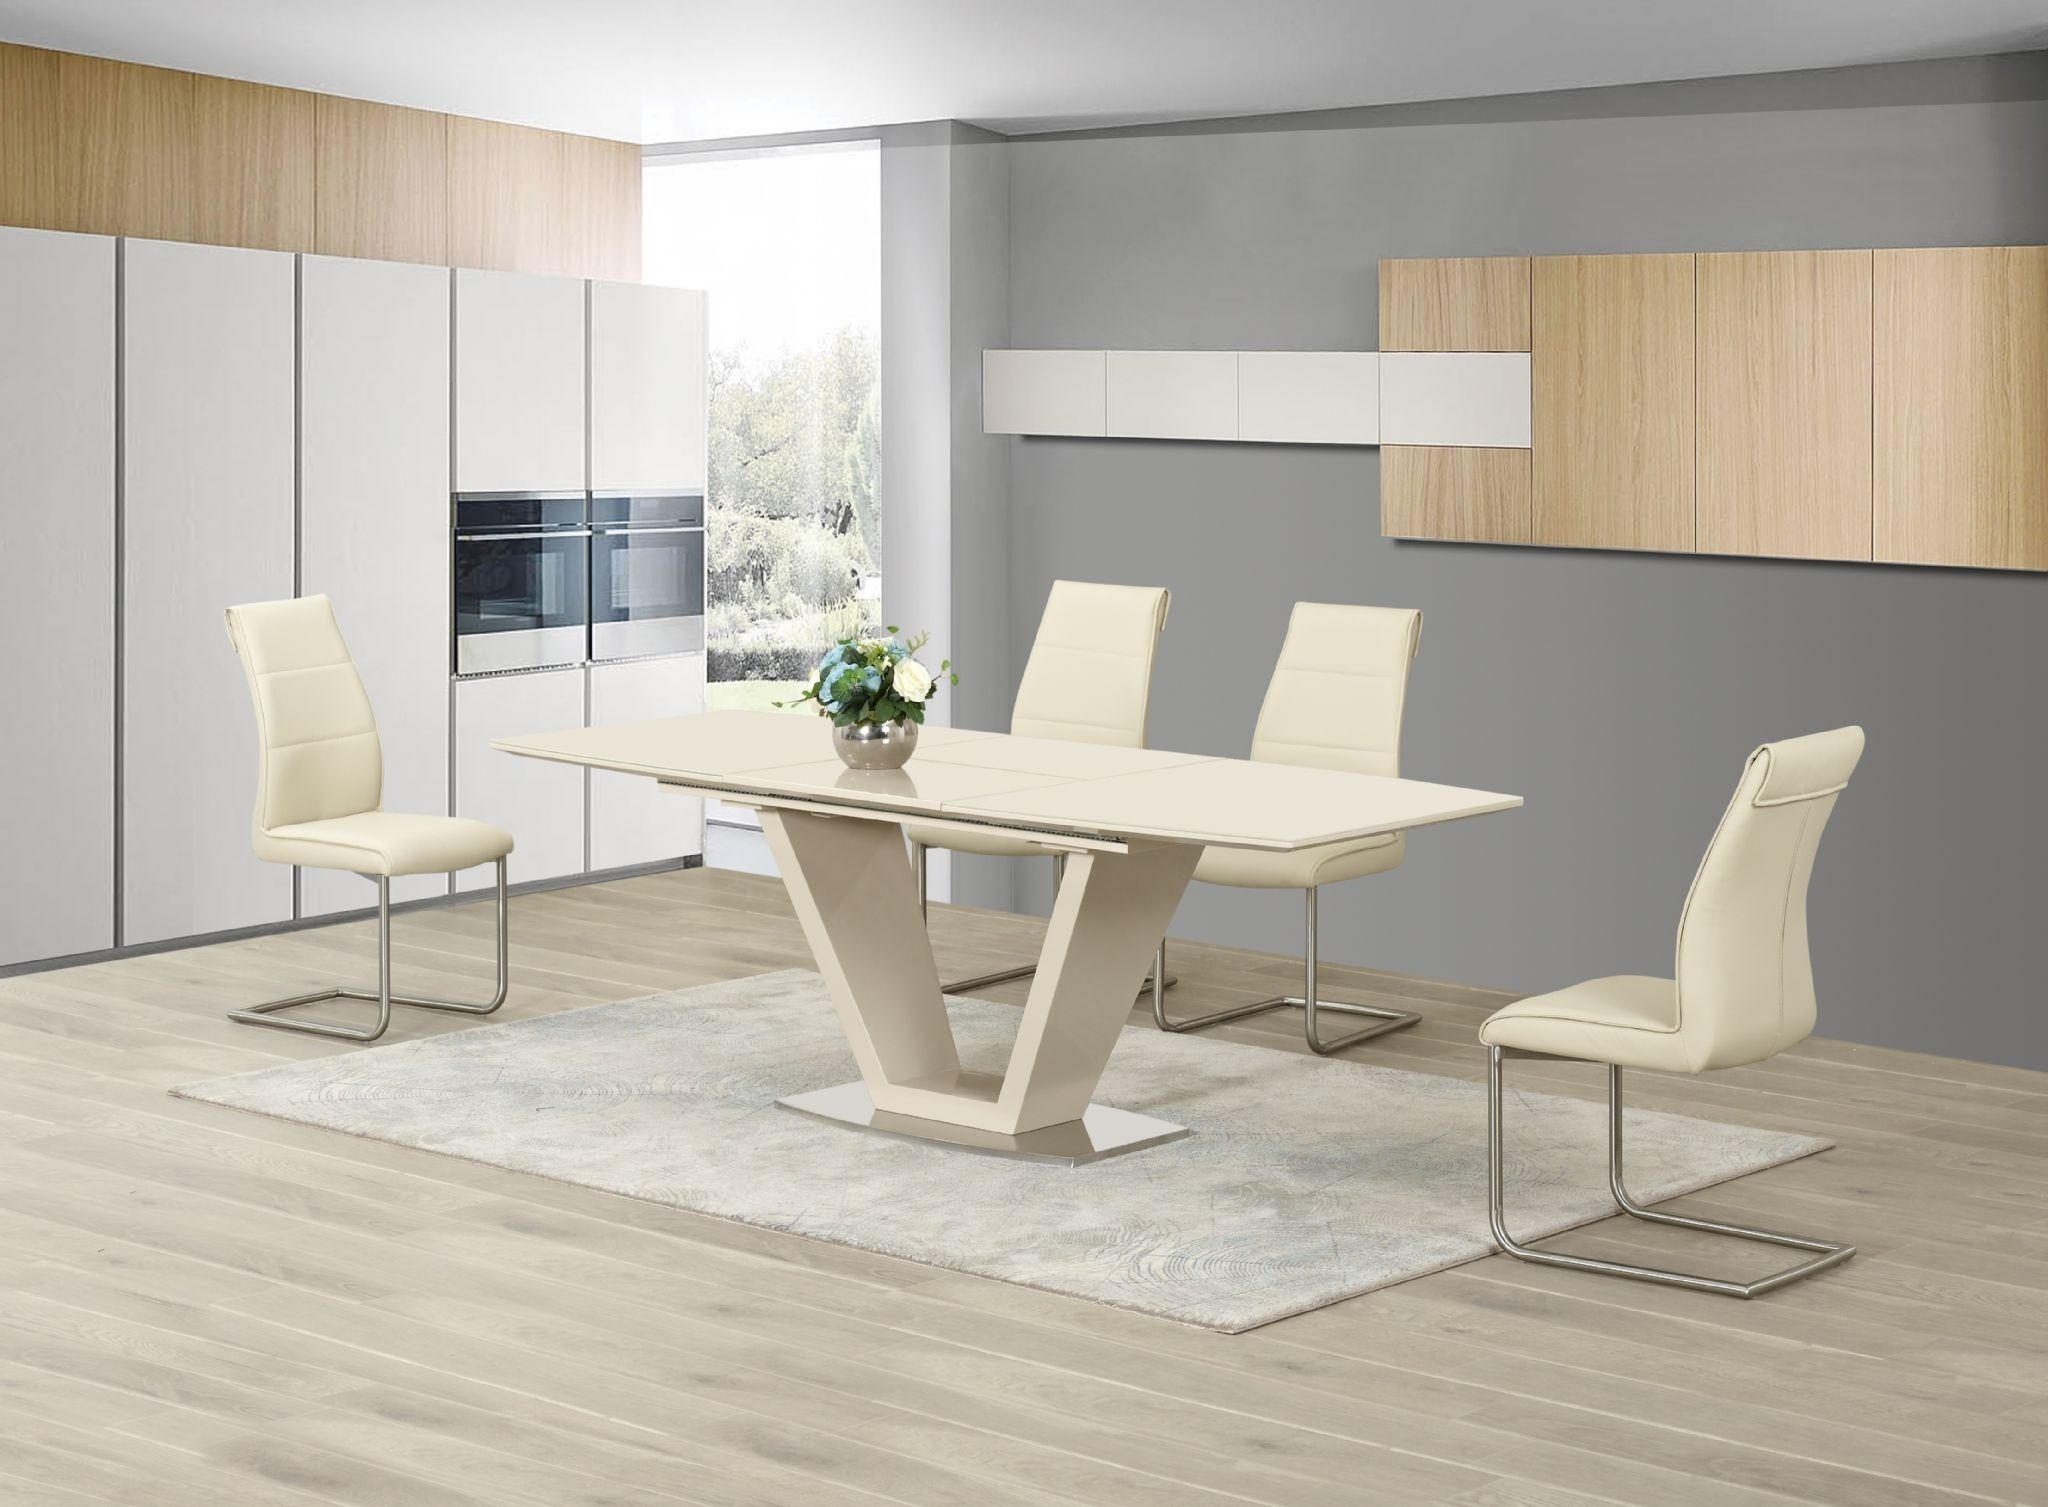 Latest Ga Loriga Cream Gloss Glass Designer Dining Table Extending 160 220 Within White Gloss And Glass Dining Tables (View 14 of 25)